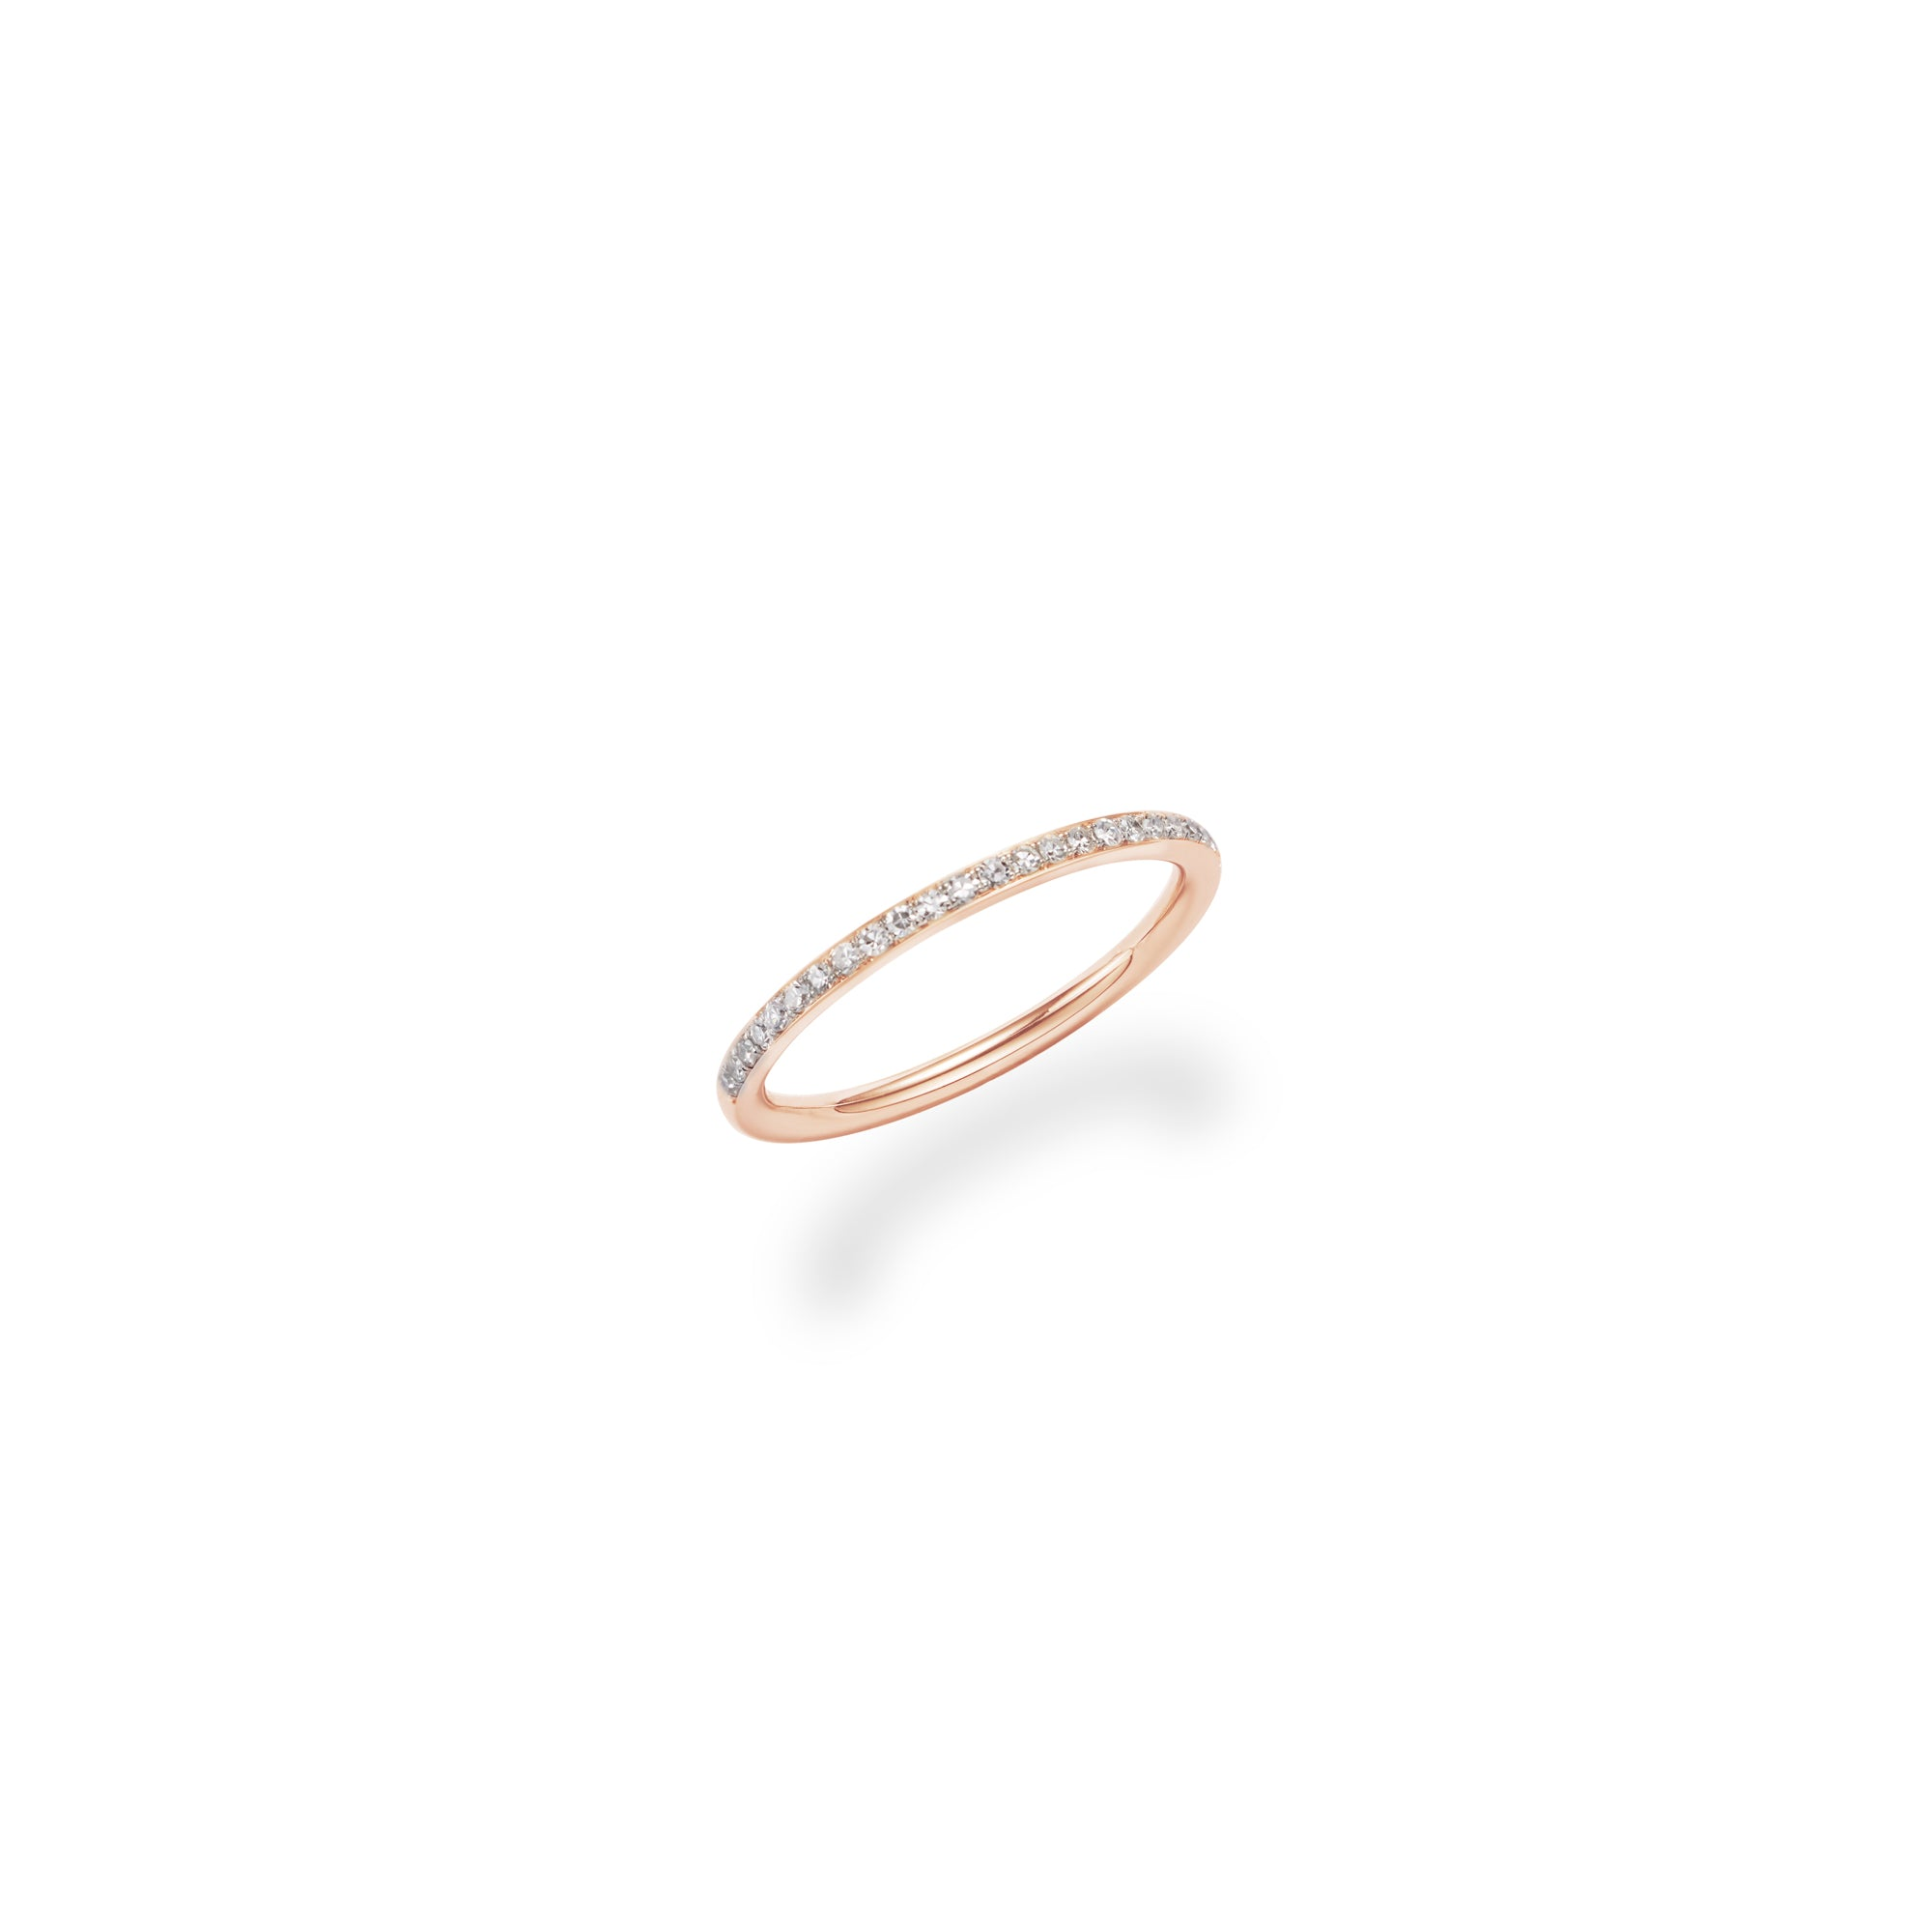 ring band rose and carat london diamond astley eternity half uk bands solid clarke gold